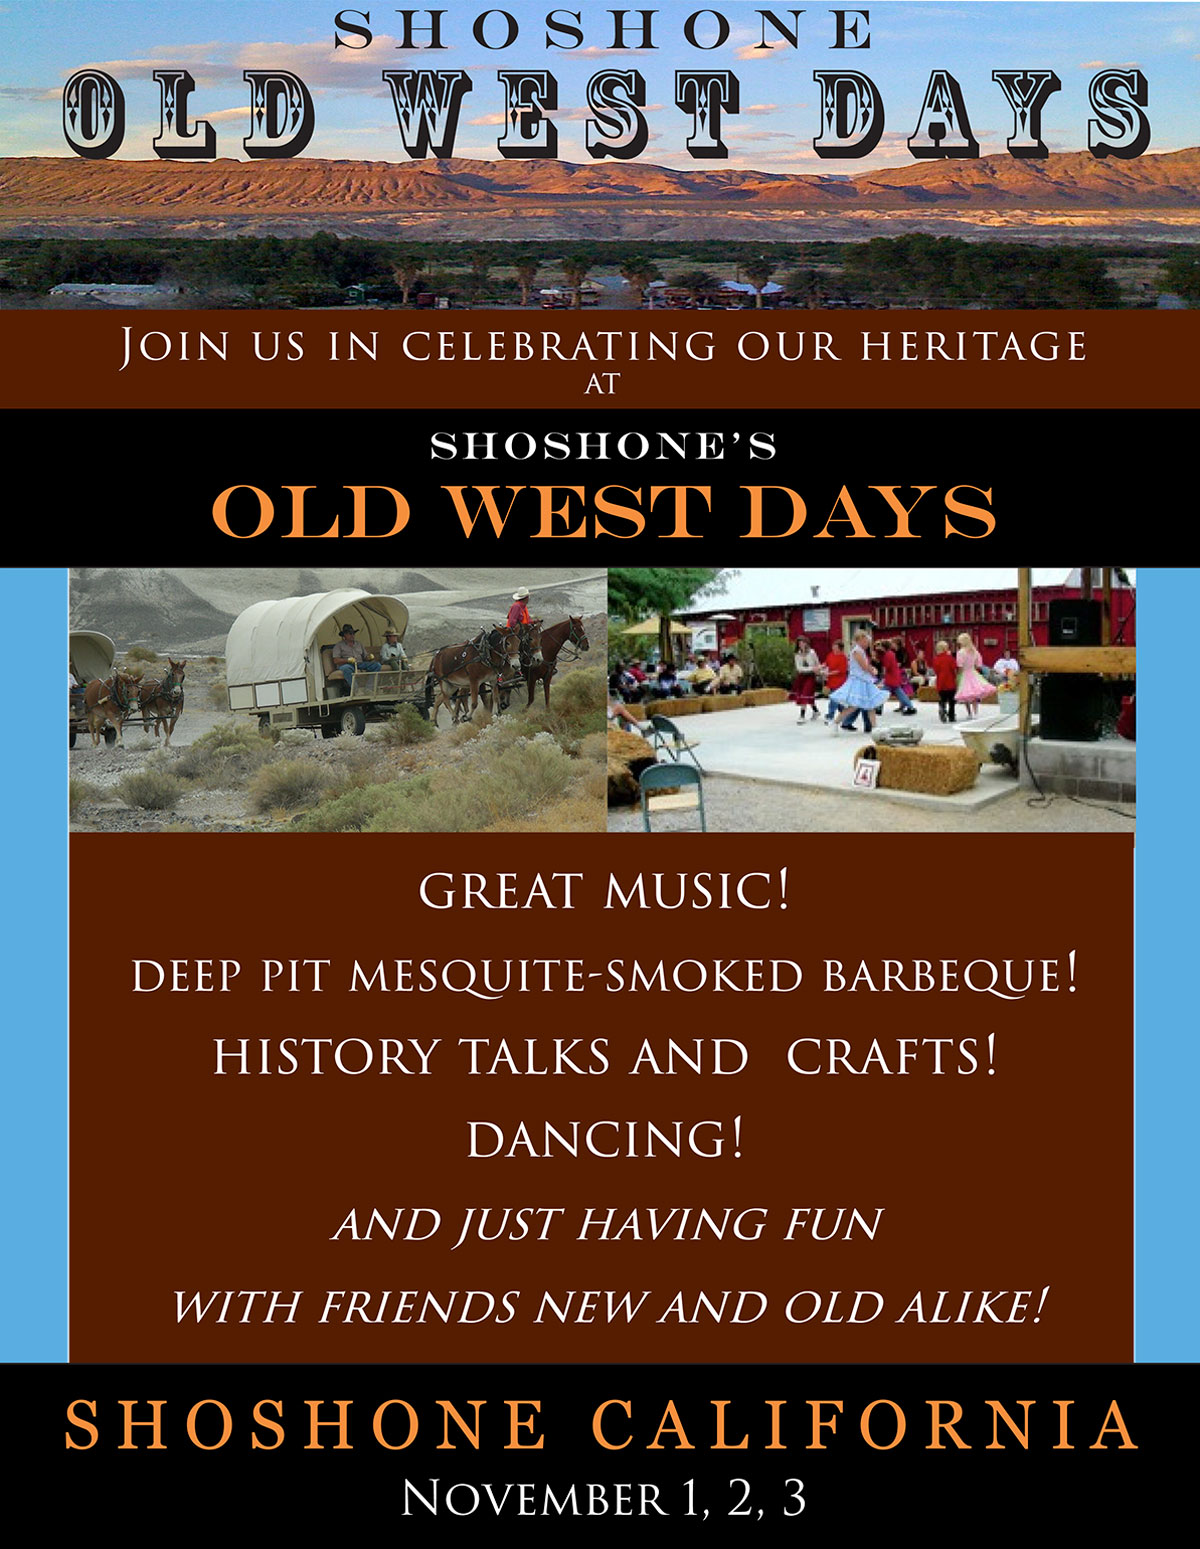 Shoshone Old West Days